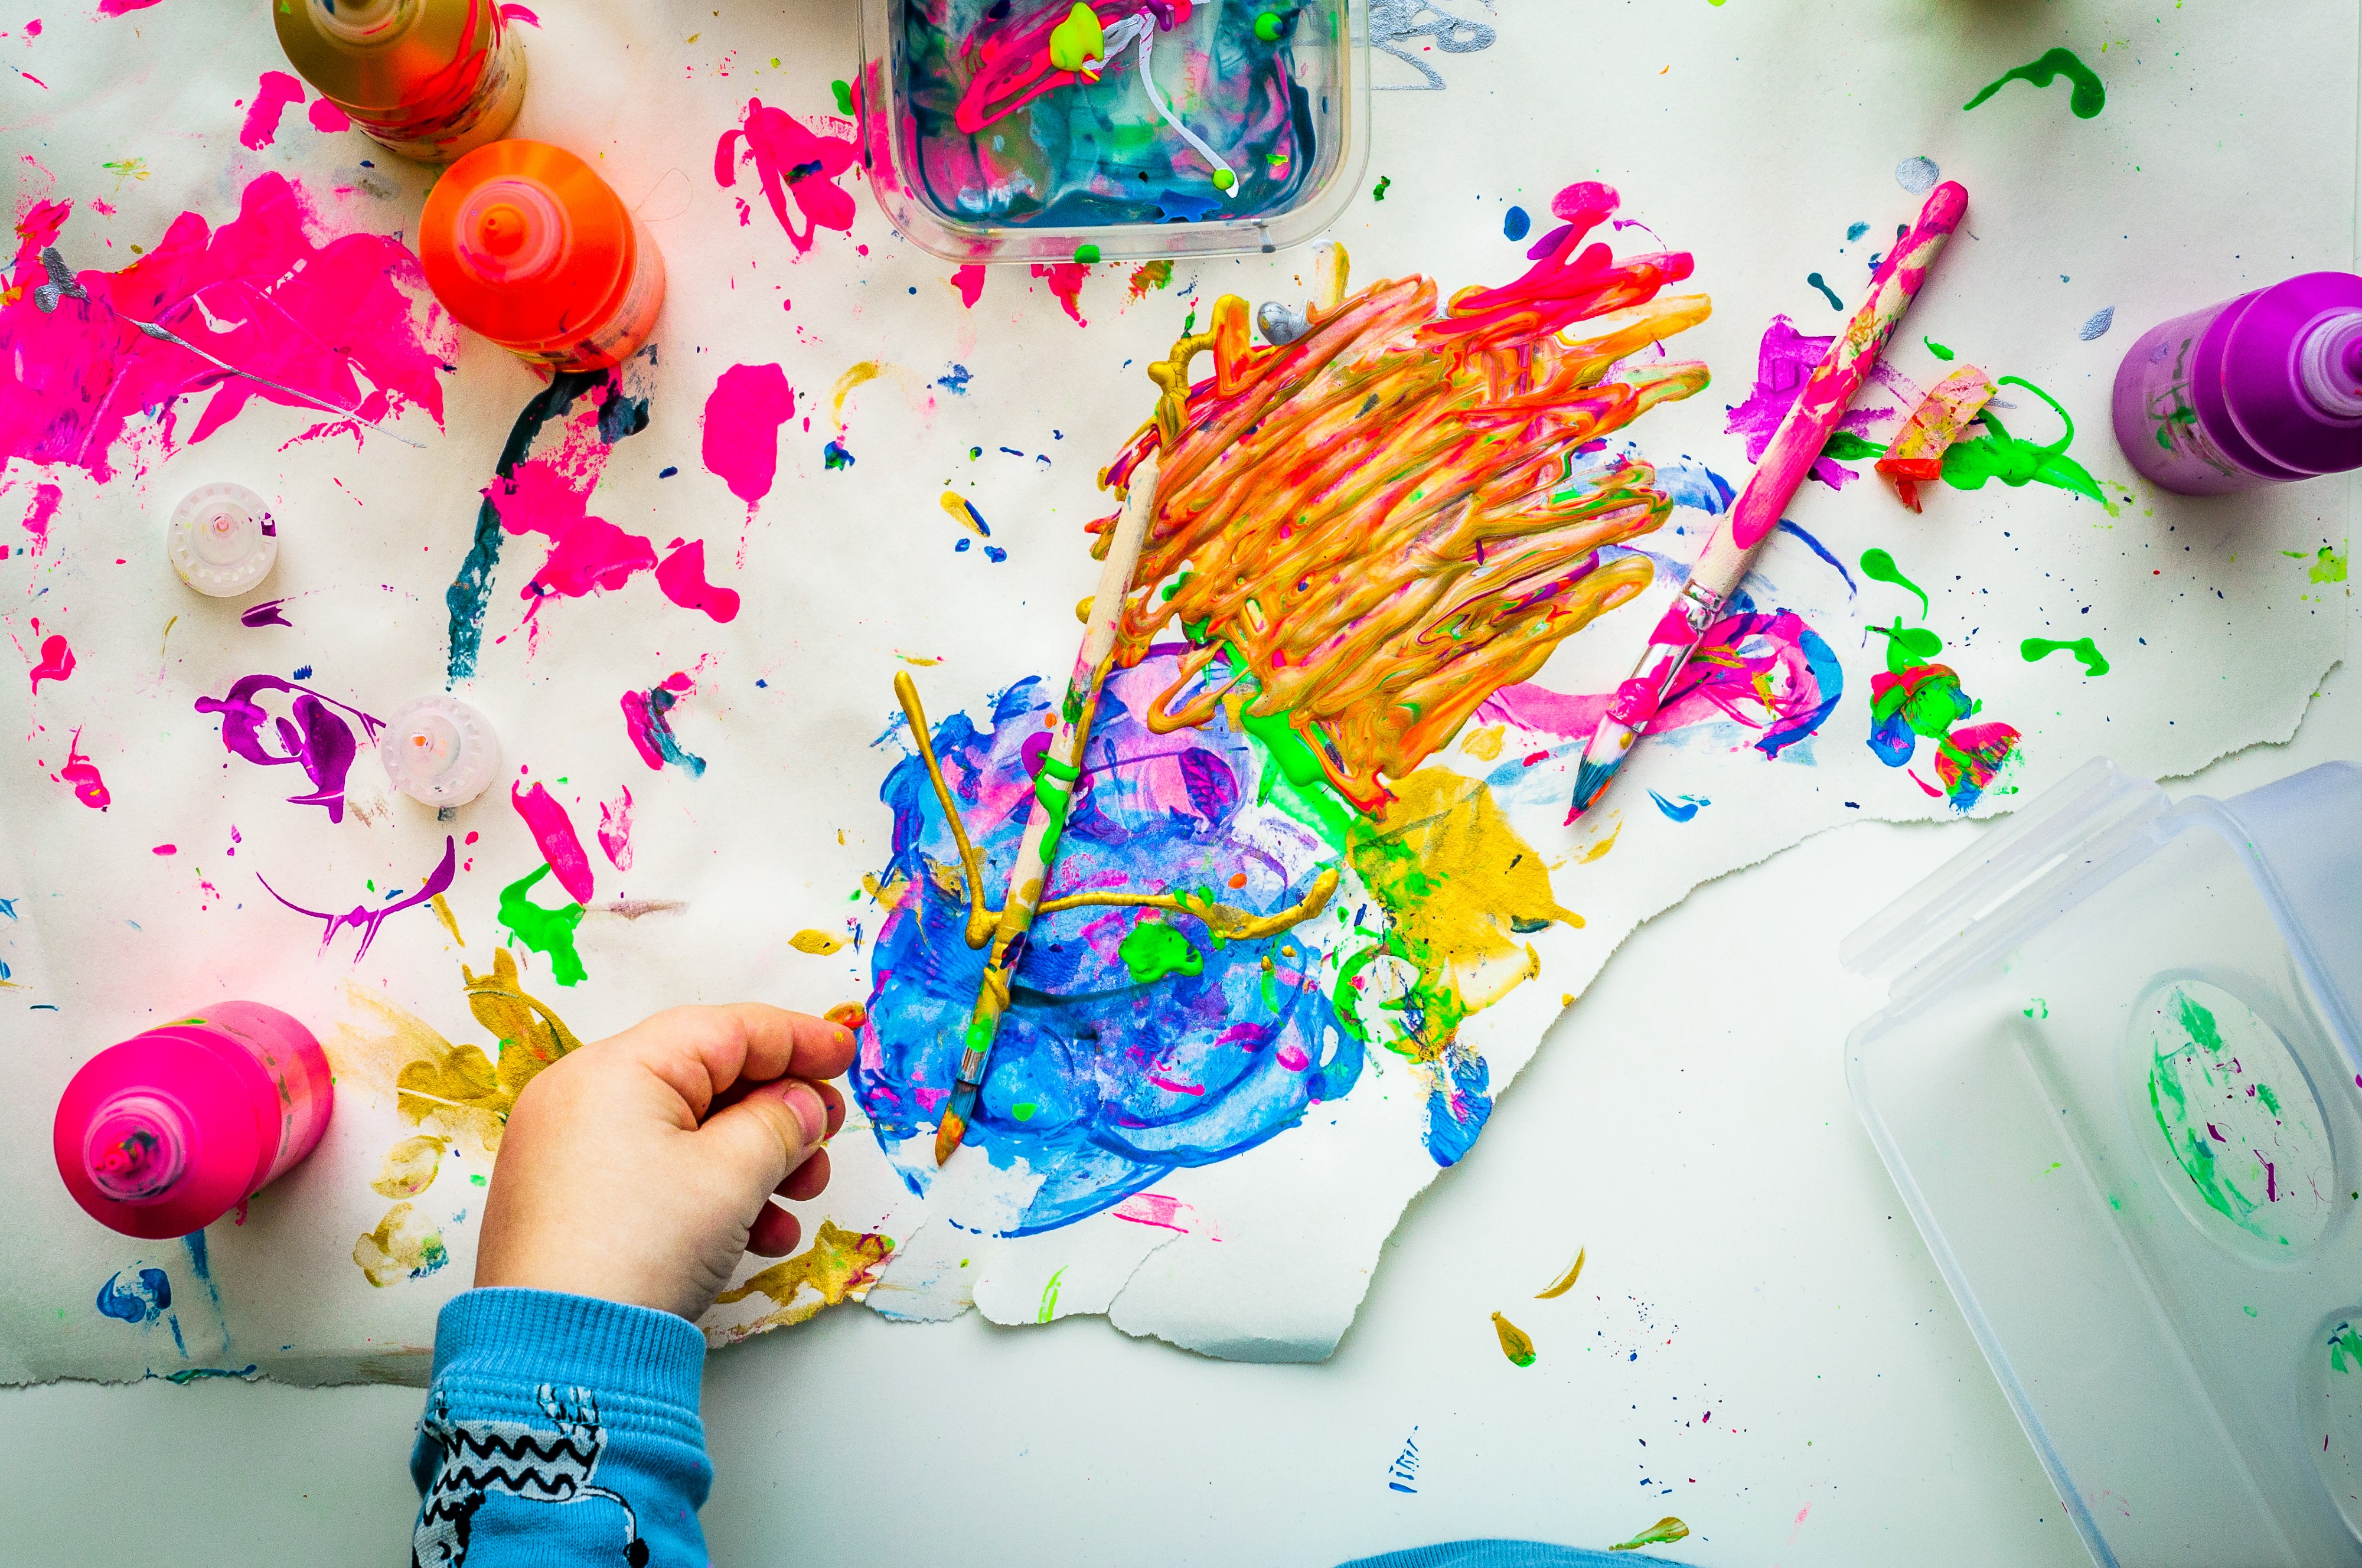 The root of all innovation is creativity. However, we can sometimes squelch creativity if we overthink things.